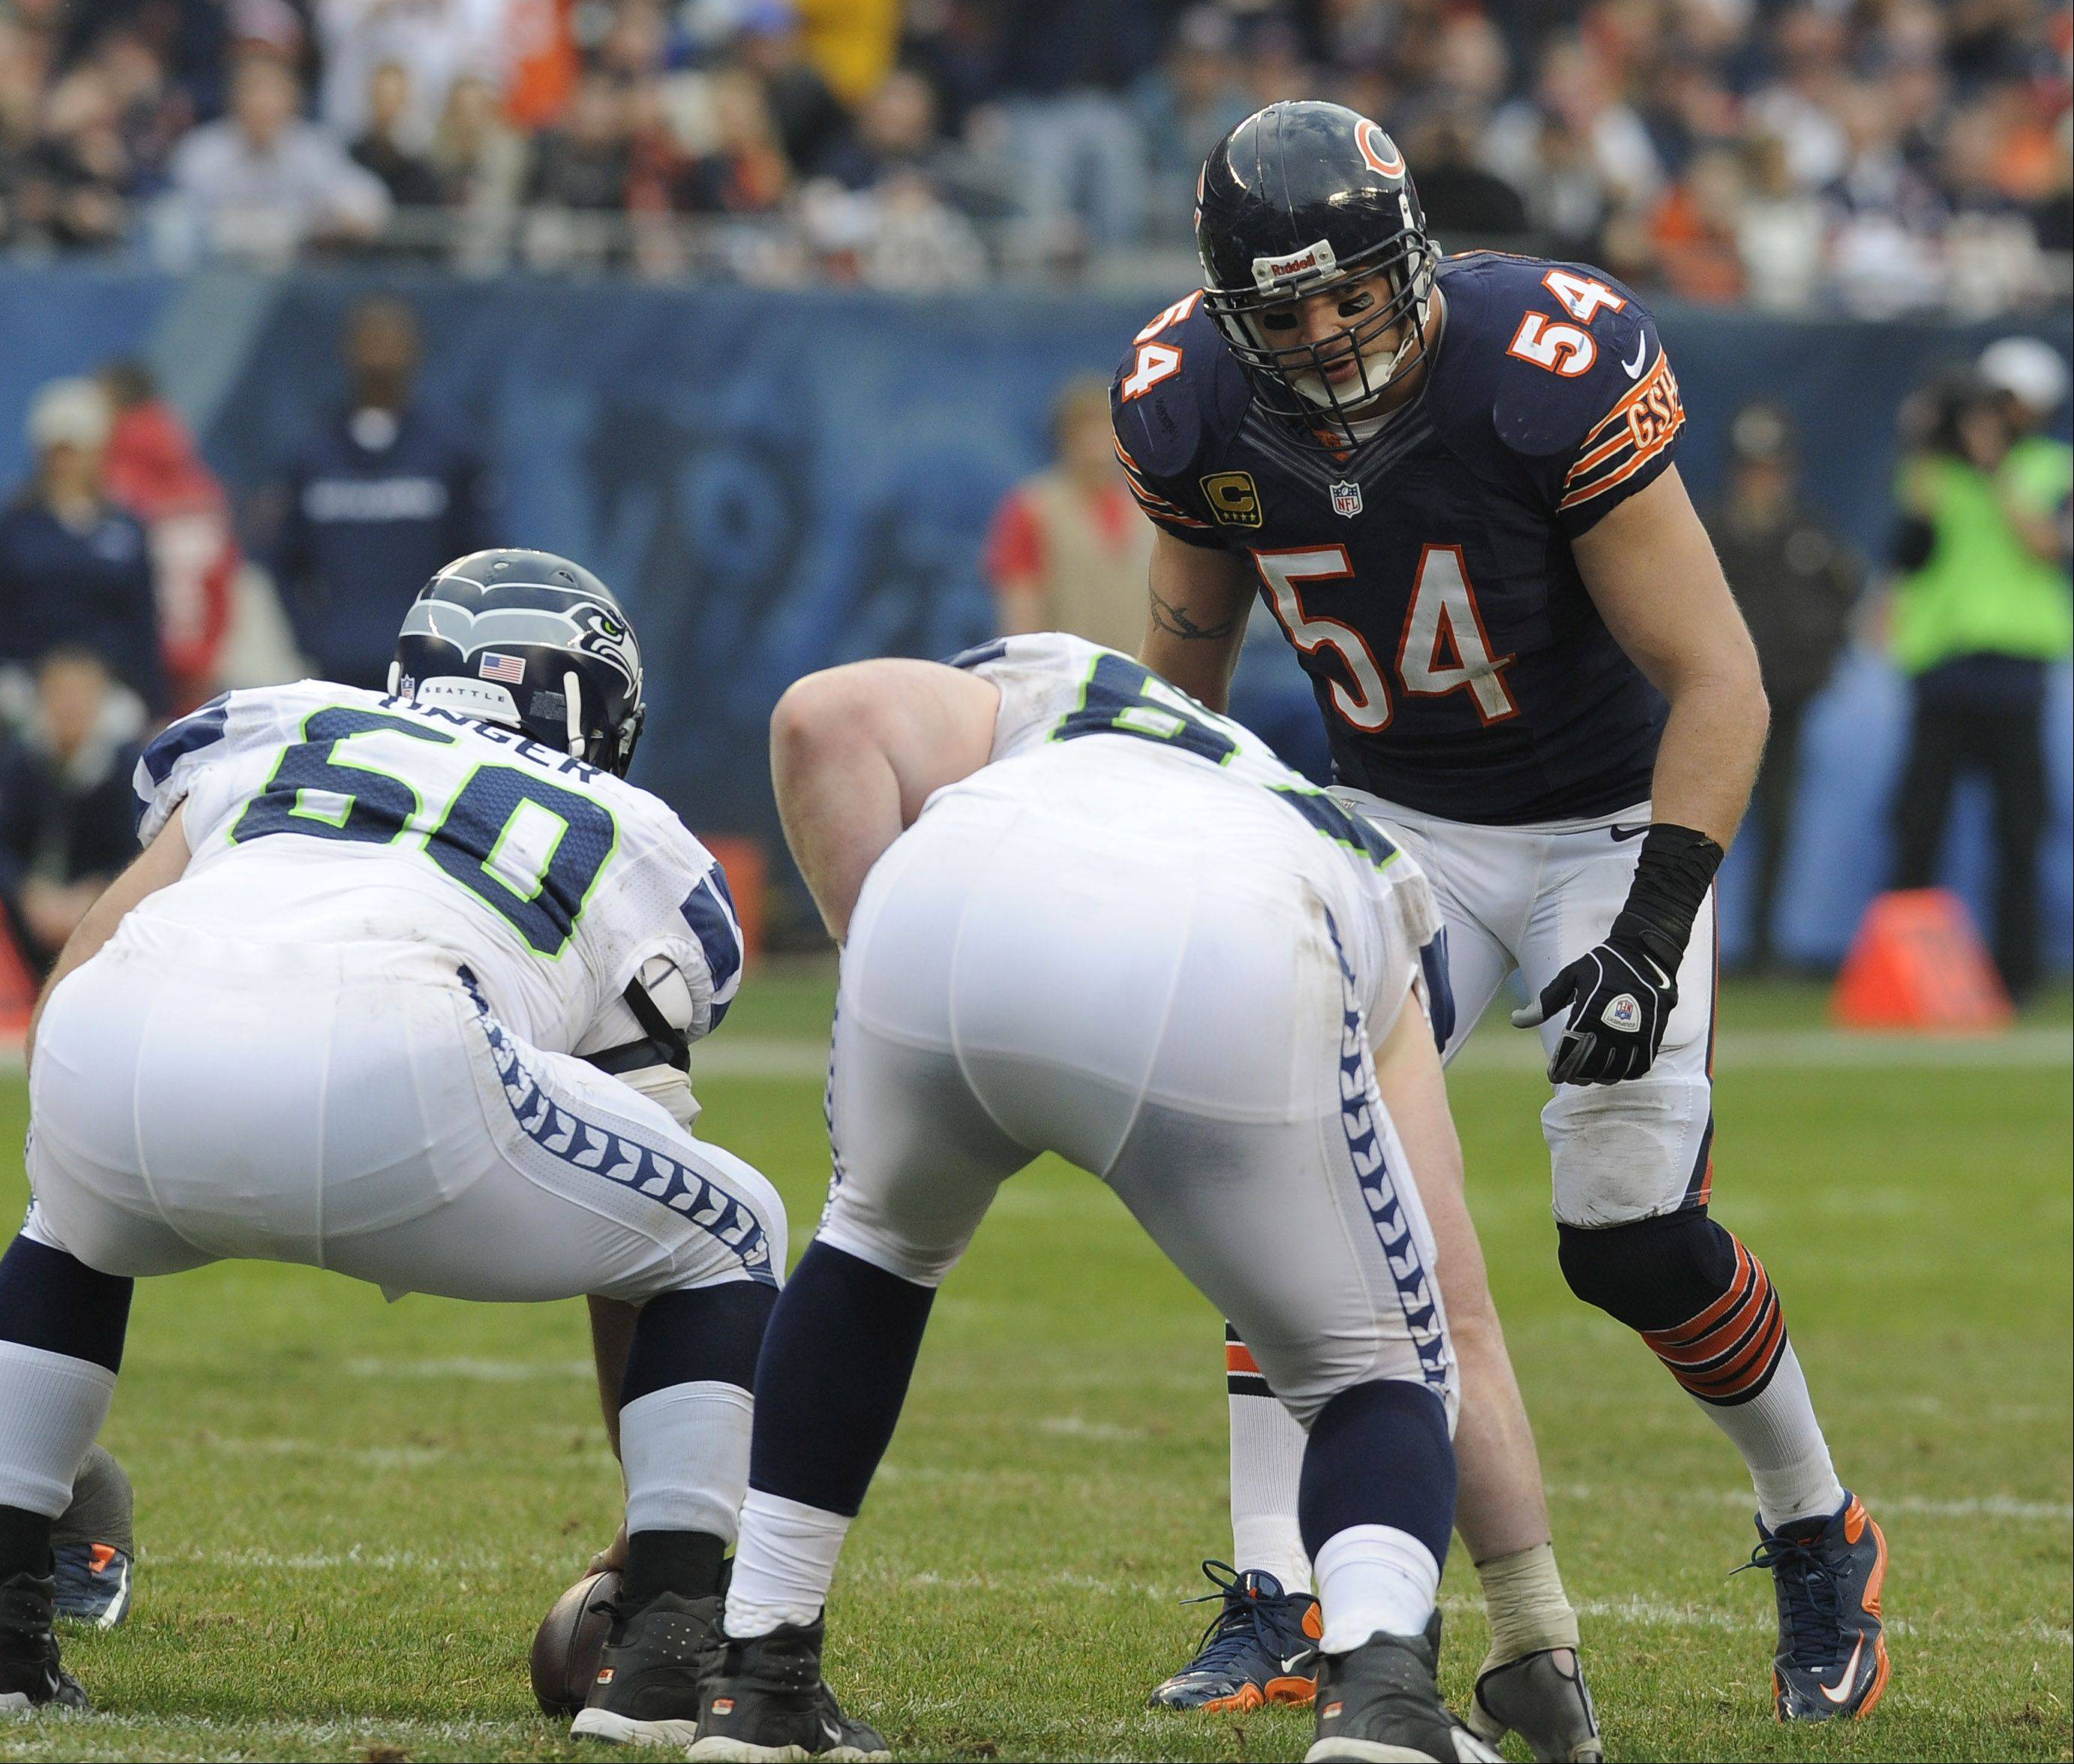 Mark Welsh/mwelsh@dailyherald.comBears Brian Urlacher on defense suffered an injury that will sideline him for the rest of the season in the Bears loss to the Seahawks at Soldier Field in Chicago.